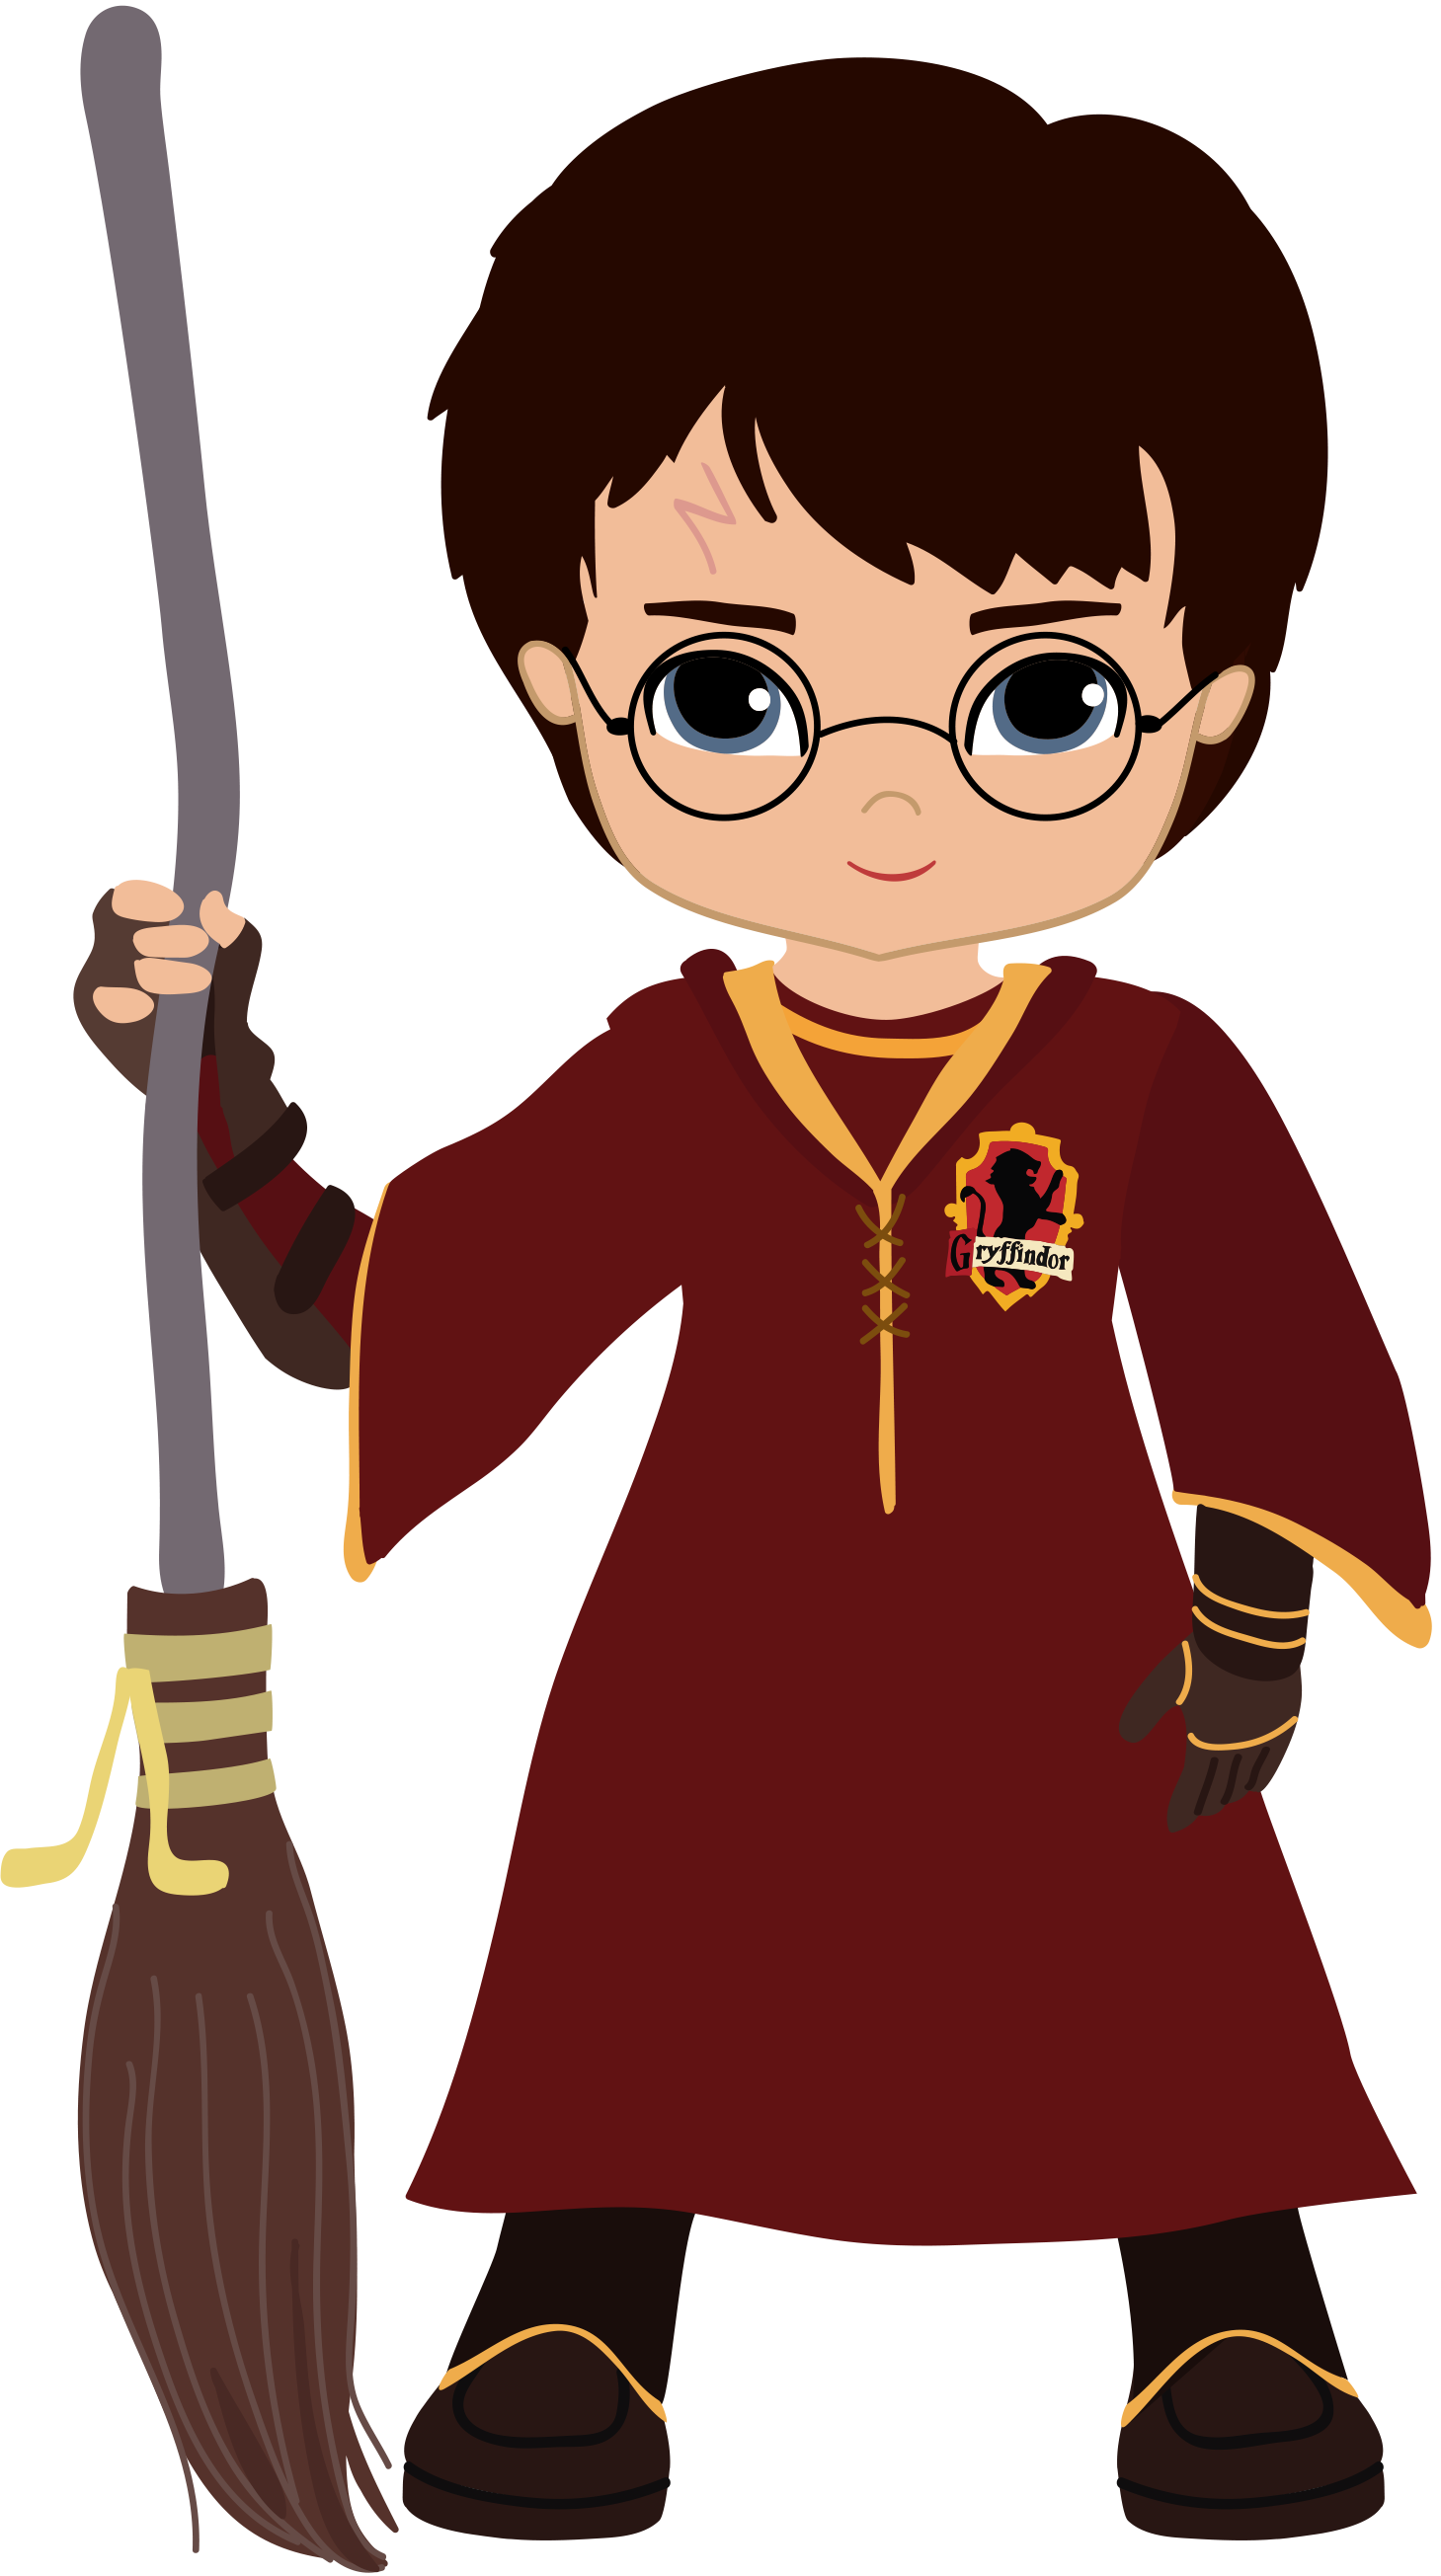 Harry potter clipart images clipart library stock Free Harry Potter Clip Art, Download Free Clip Art, Free Clip Art on ... clipart library stock